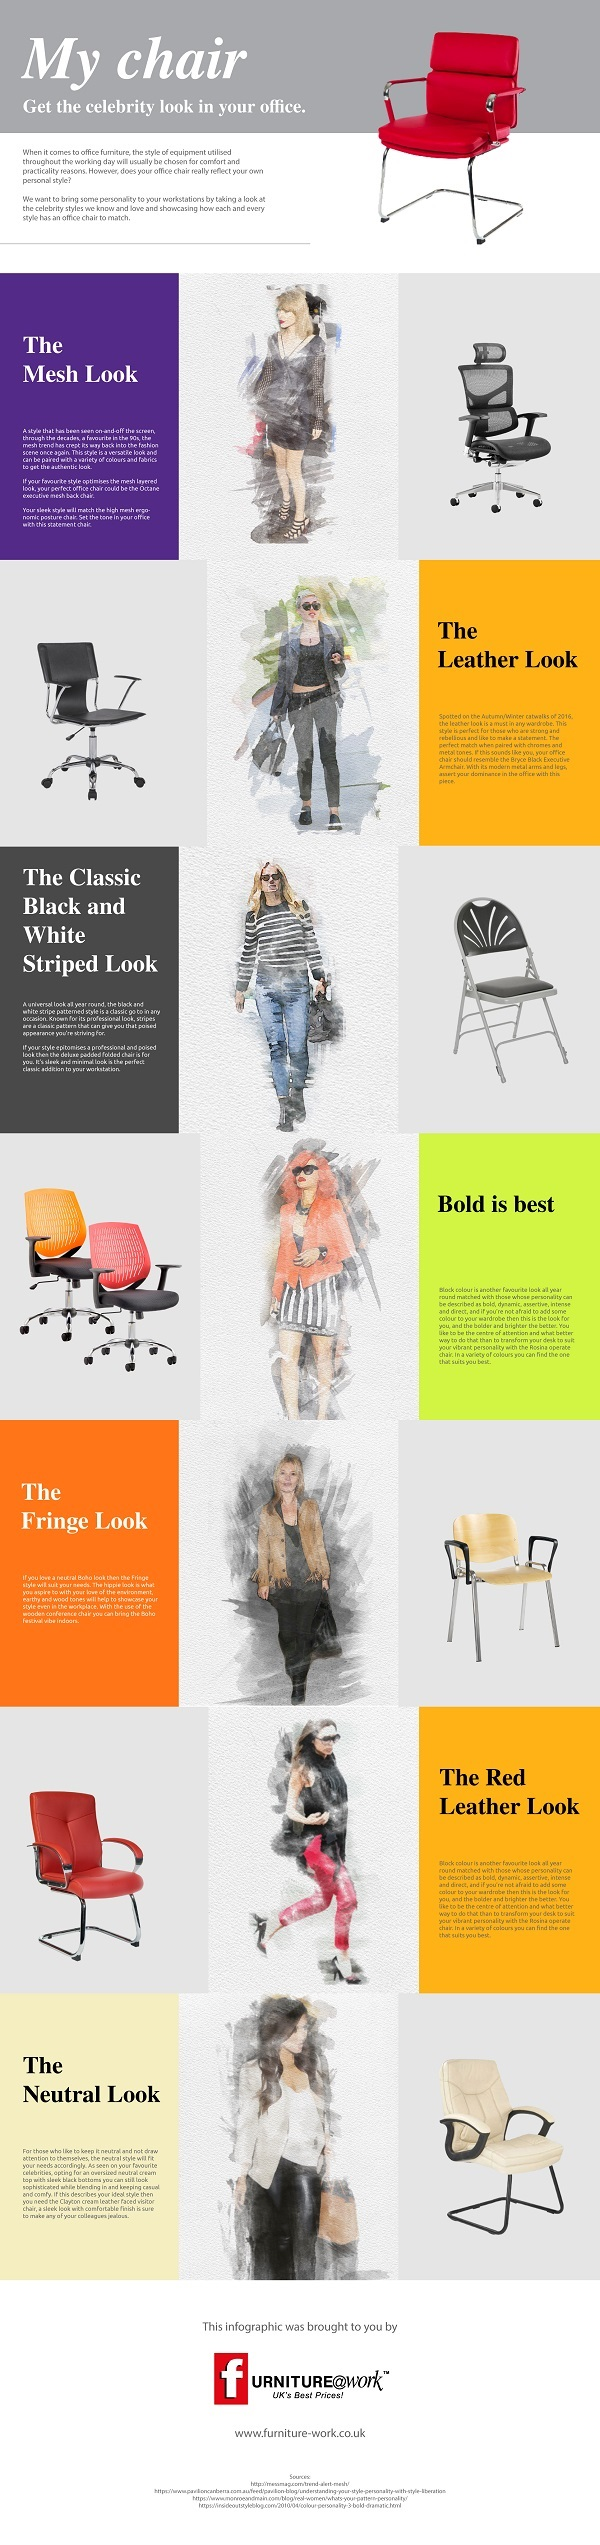 My-chair-Furniture-at-work-infographic-watercolours (3).jpg